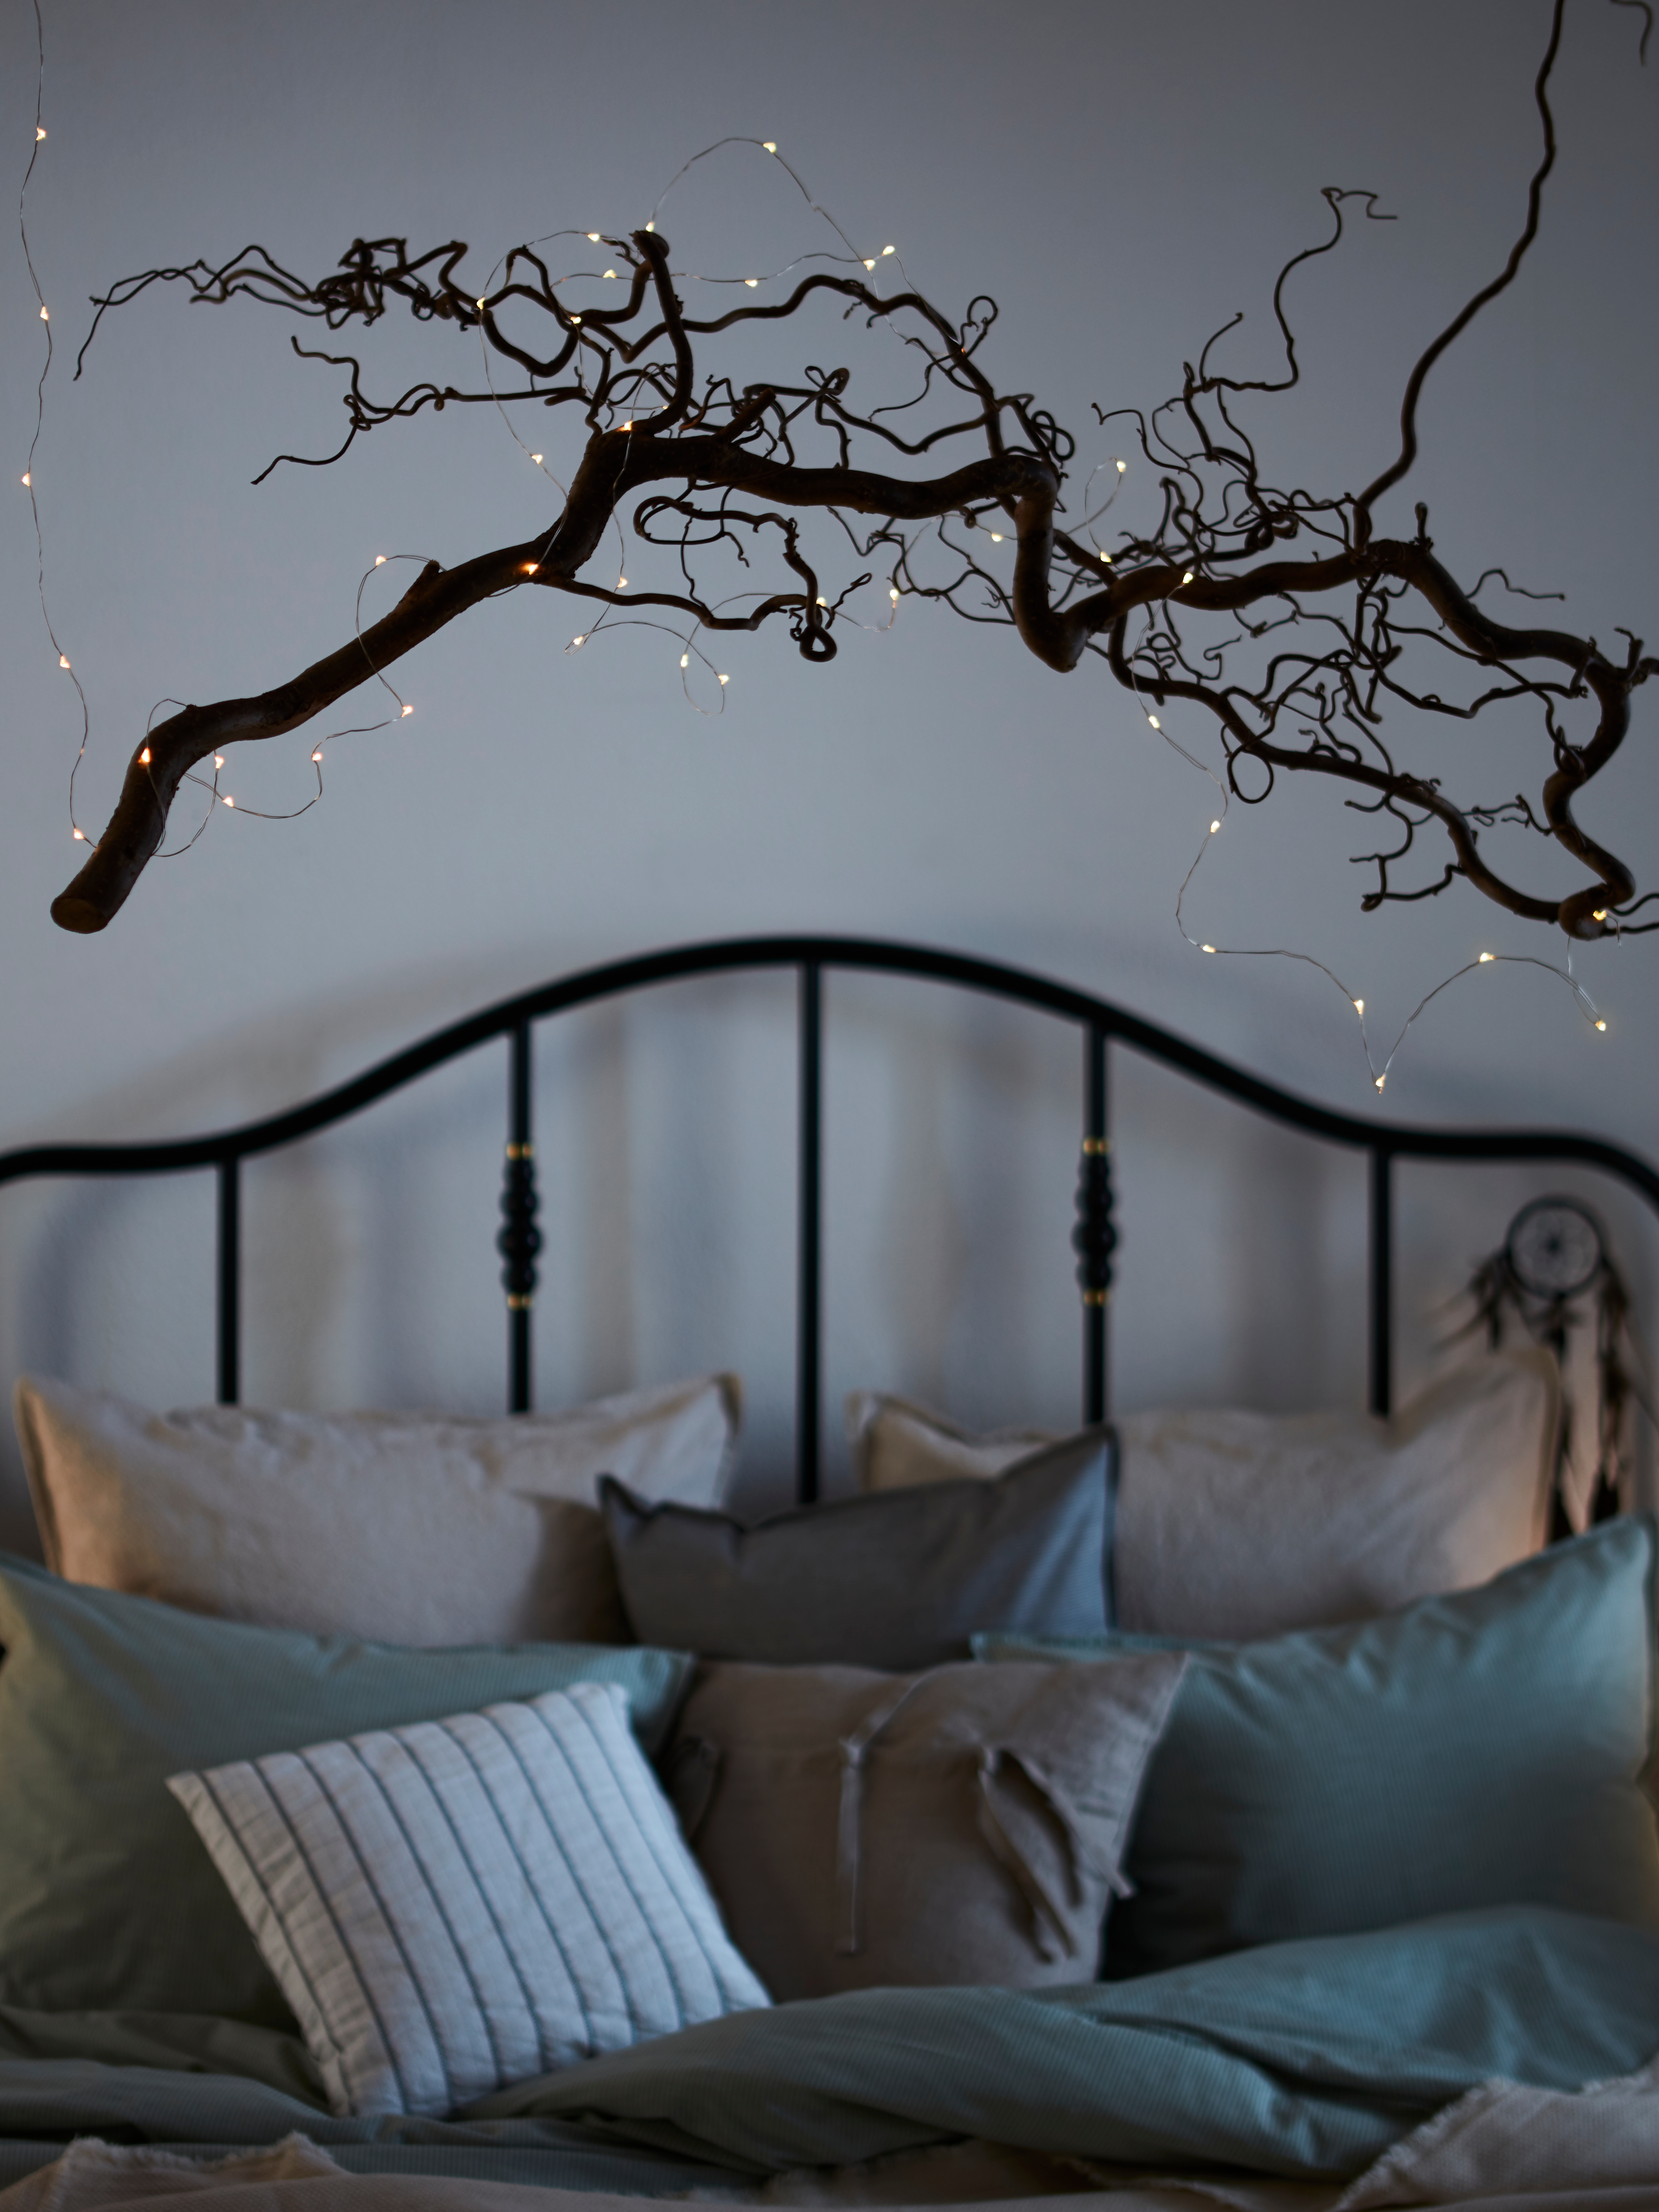 VISSVASS LED lighting chain is wrapped around a gnarled branch suspended over a wrought-iron bed that's covered with pillows.